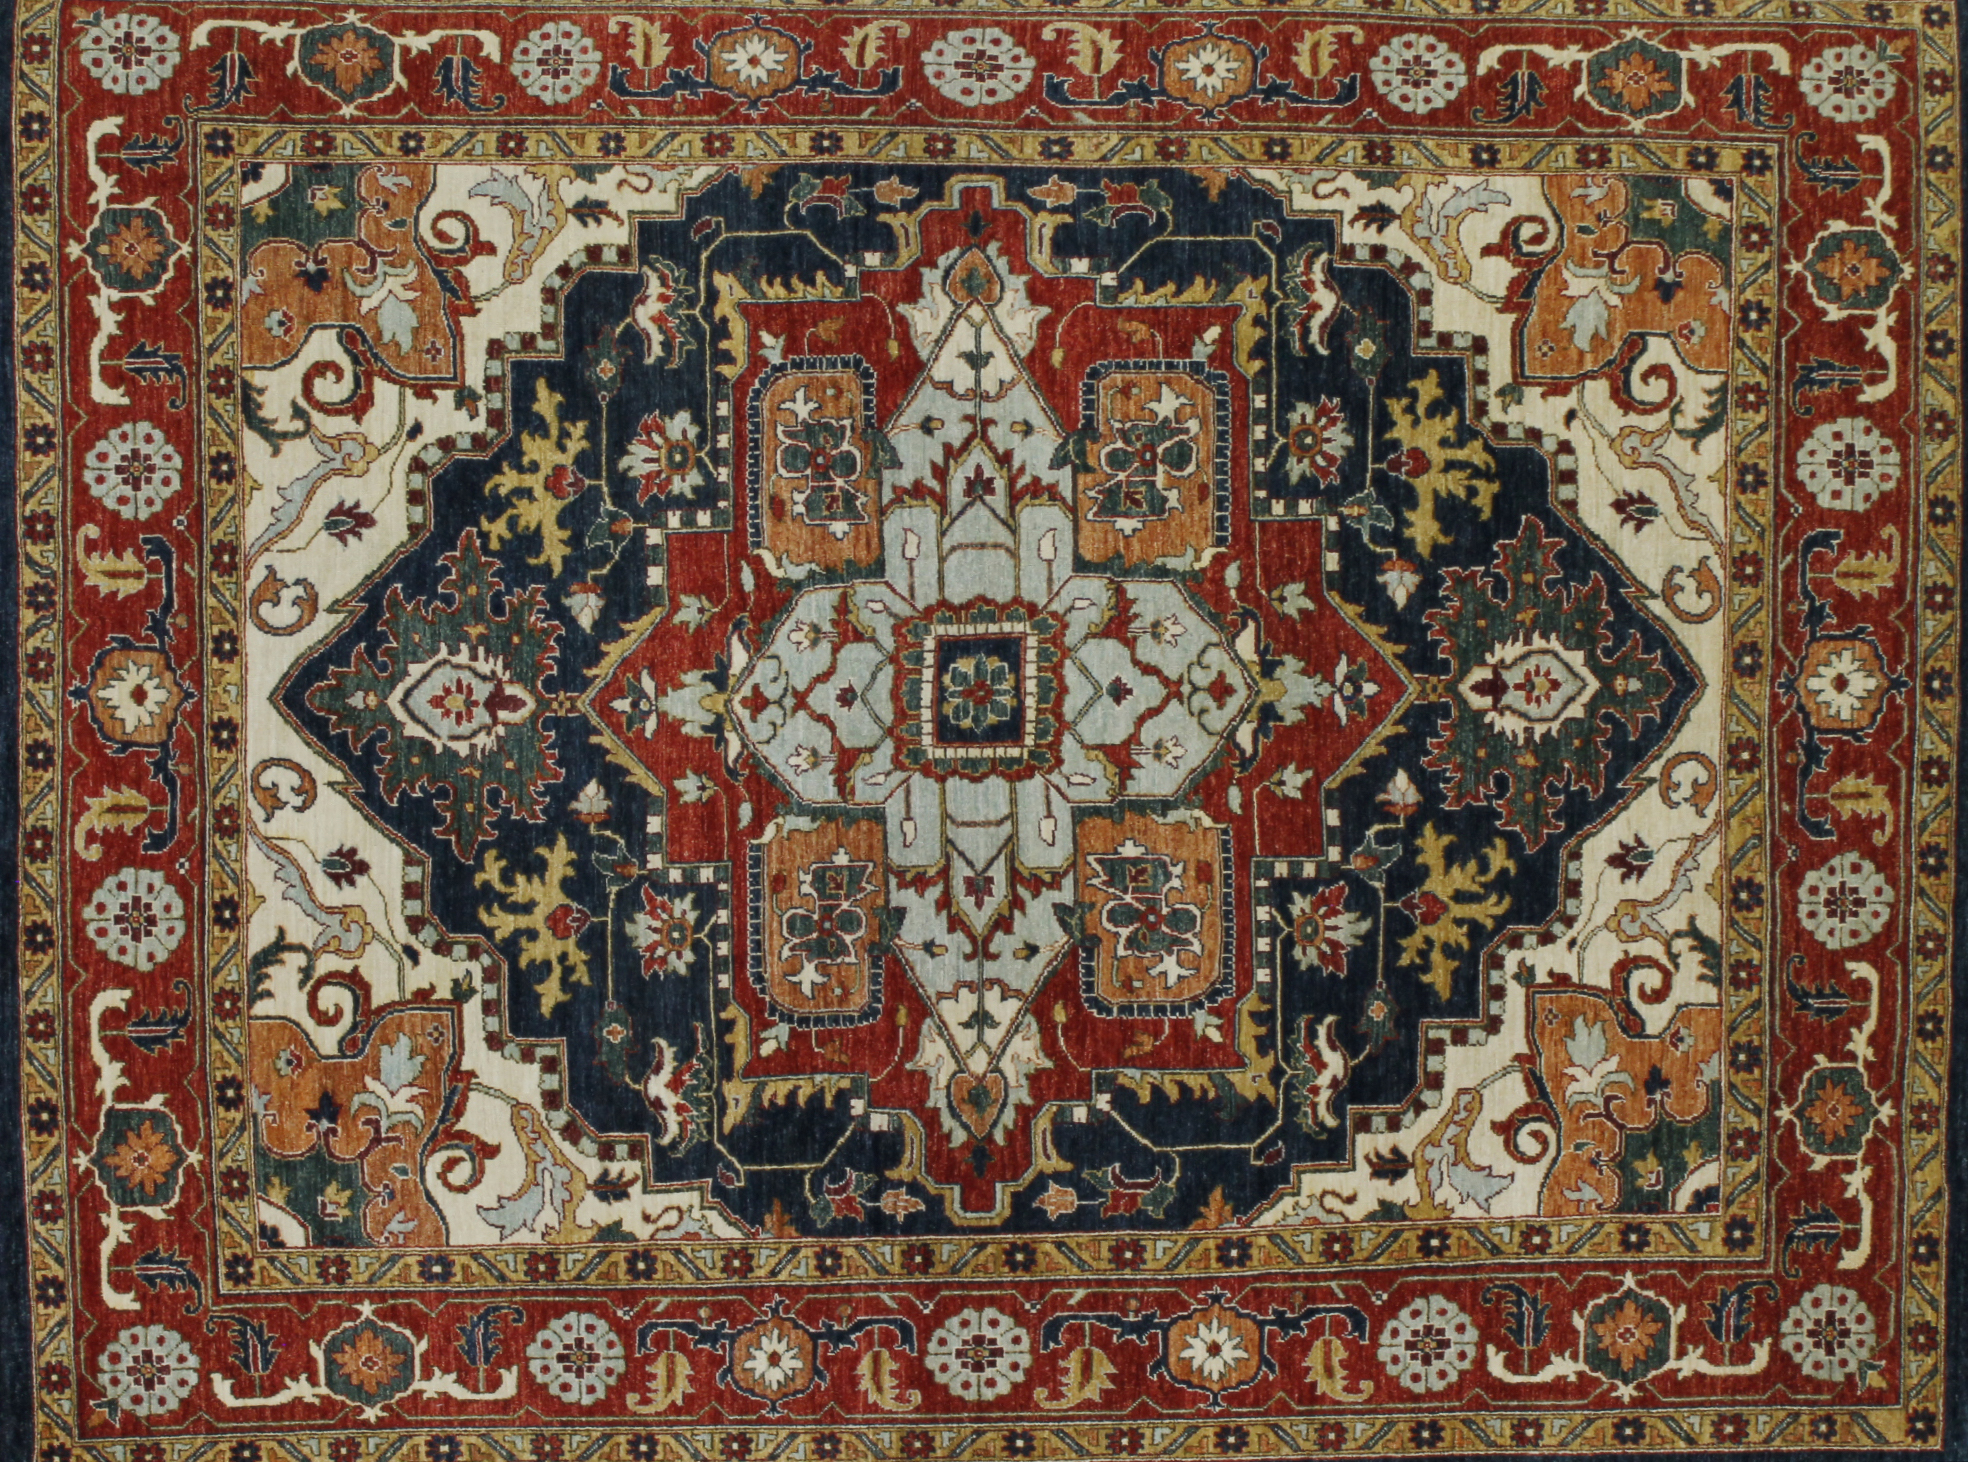 8x10 Peshawar Hand Knotted Wool Area Rug - MR022581